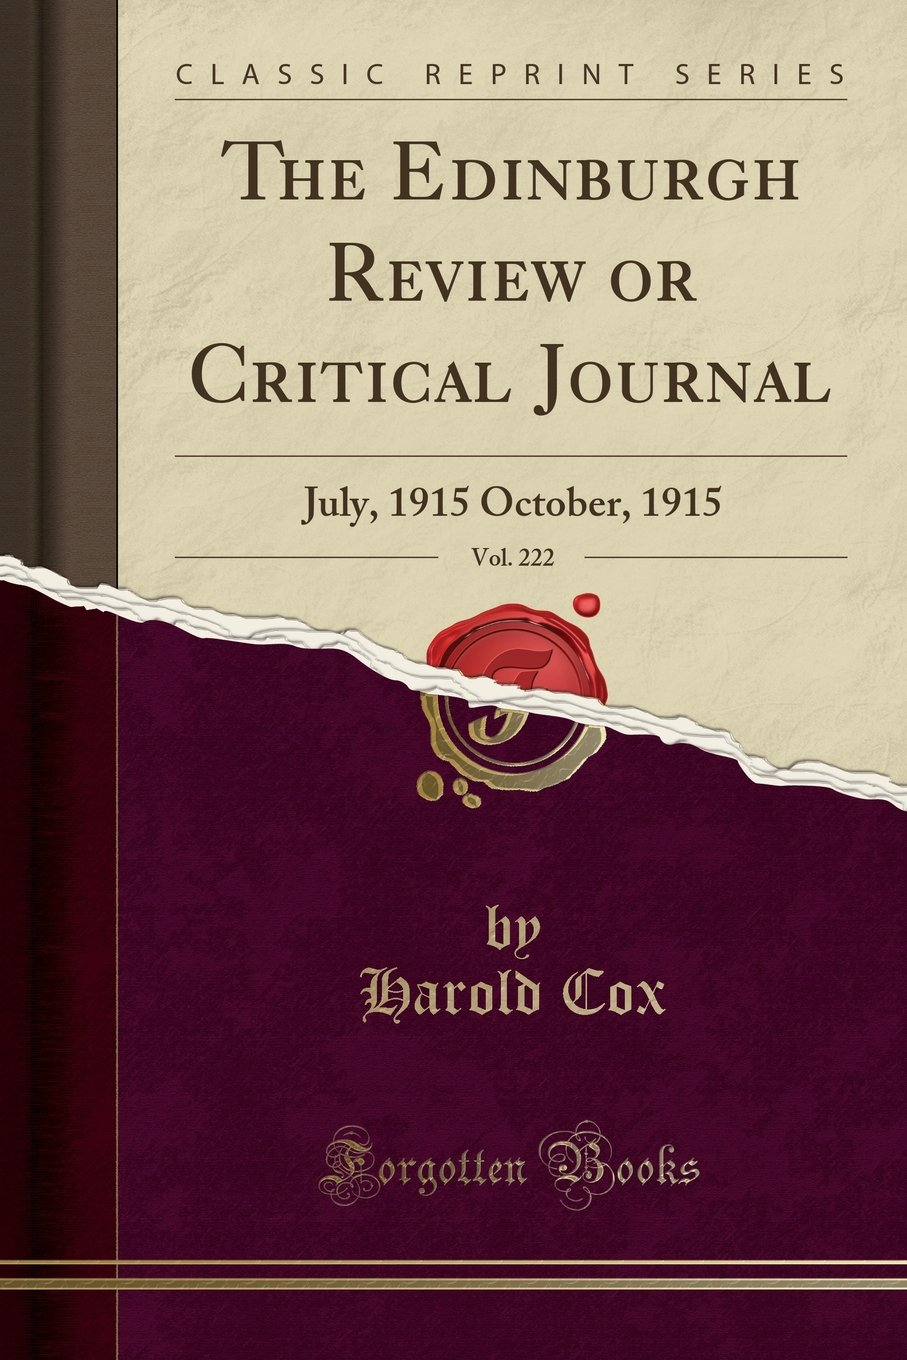 The Edinburgh Review or Critical Journal, Vol. 222: July, 1915 October, 1915 (Classic Reprint) pdf epub